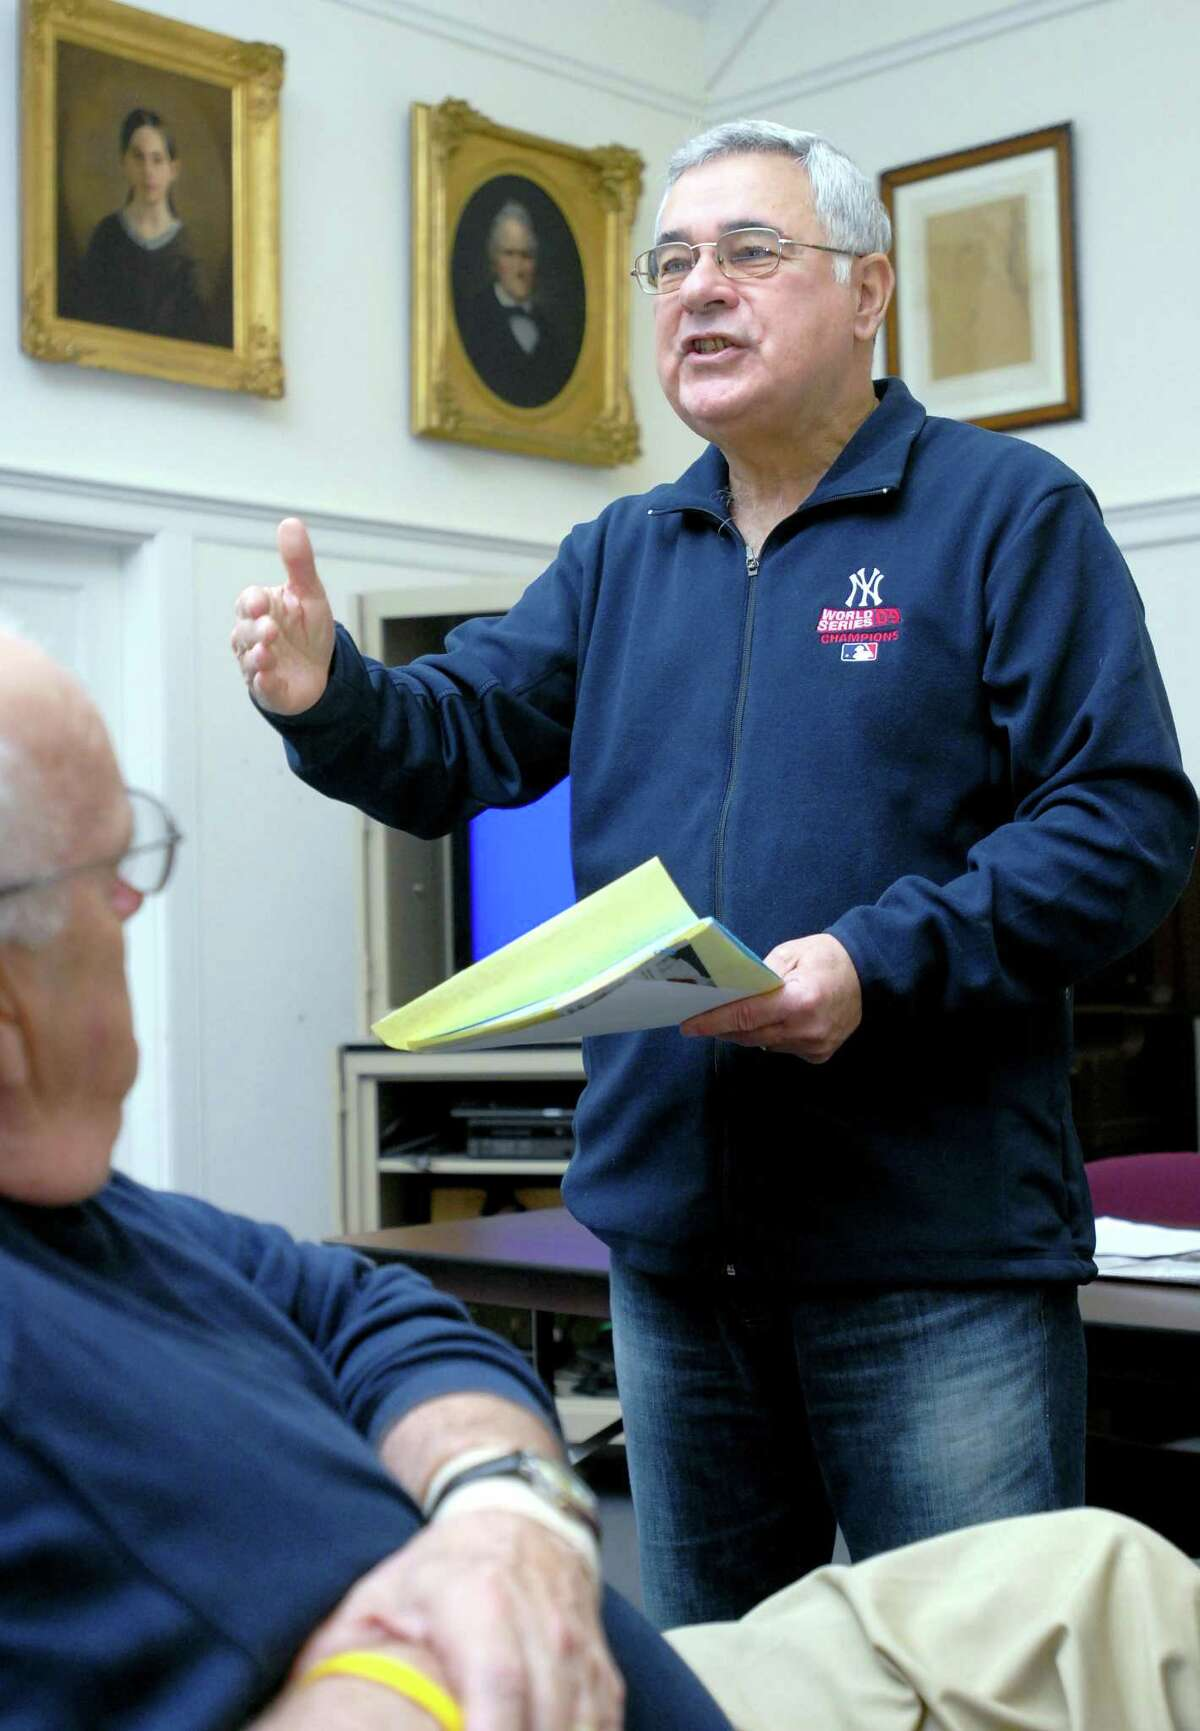 Rich Marazzi leads the discussion at a meeting of the Silver Sluggers at the Derby Public Library on Dec. 3, 2009.